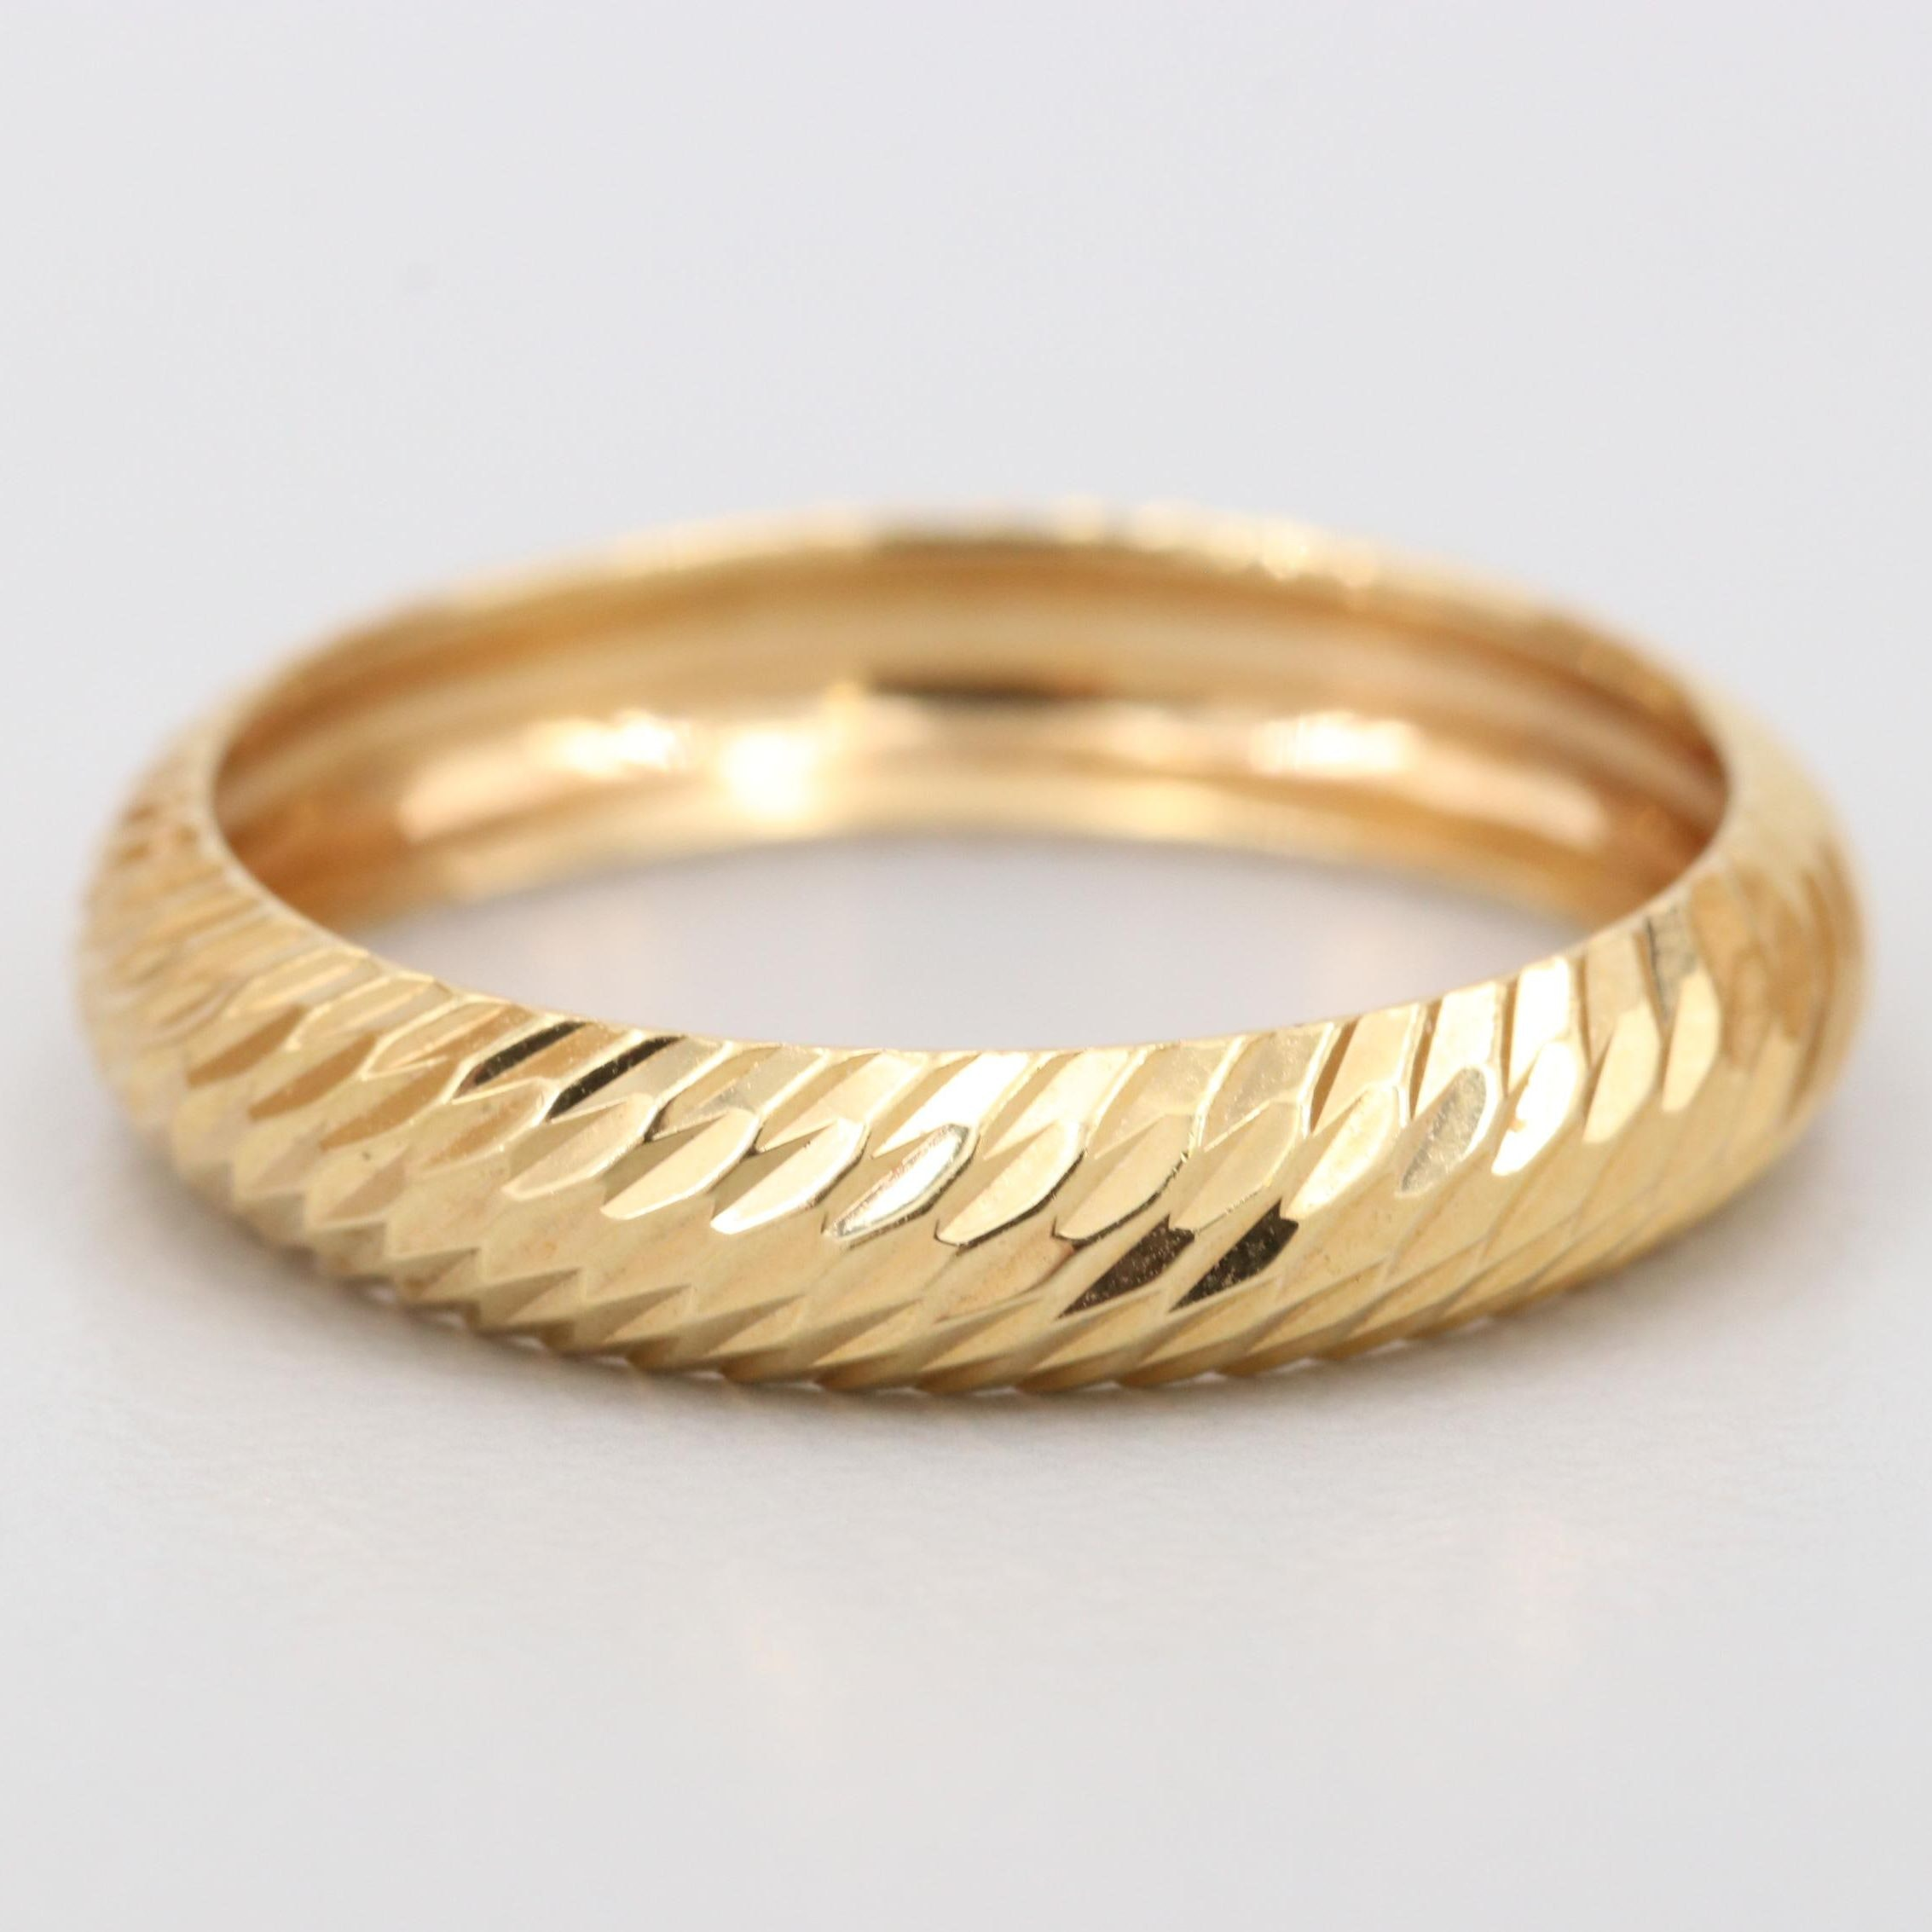 14K Yellow Gold Domed Band Ring